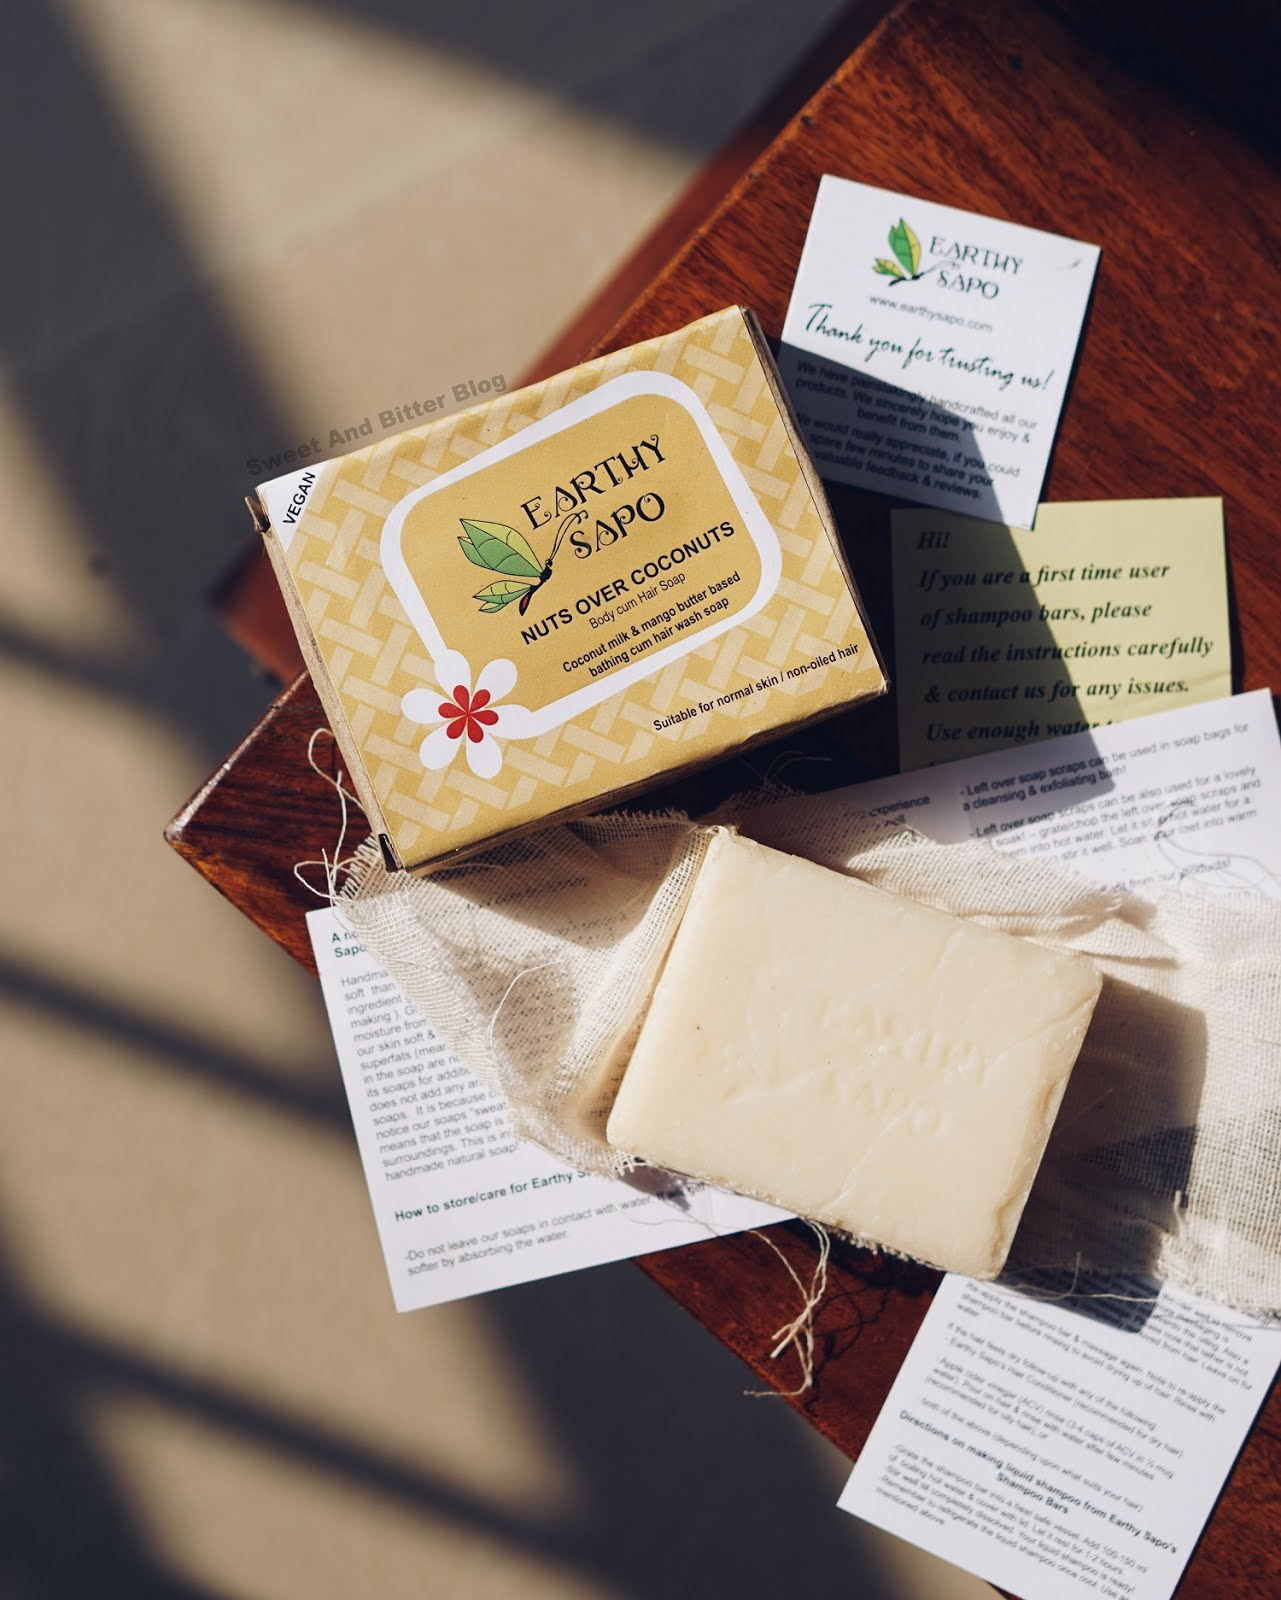 Earthy Sapo Nuts Over Coconuts Vegan Solid Shampoo Bar Review India